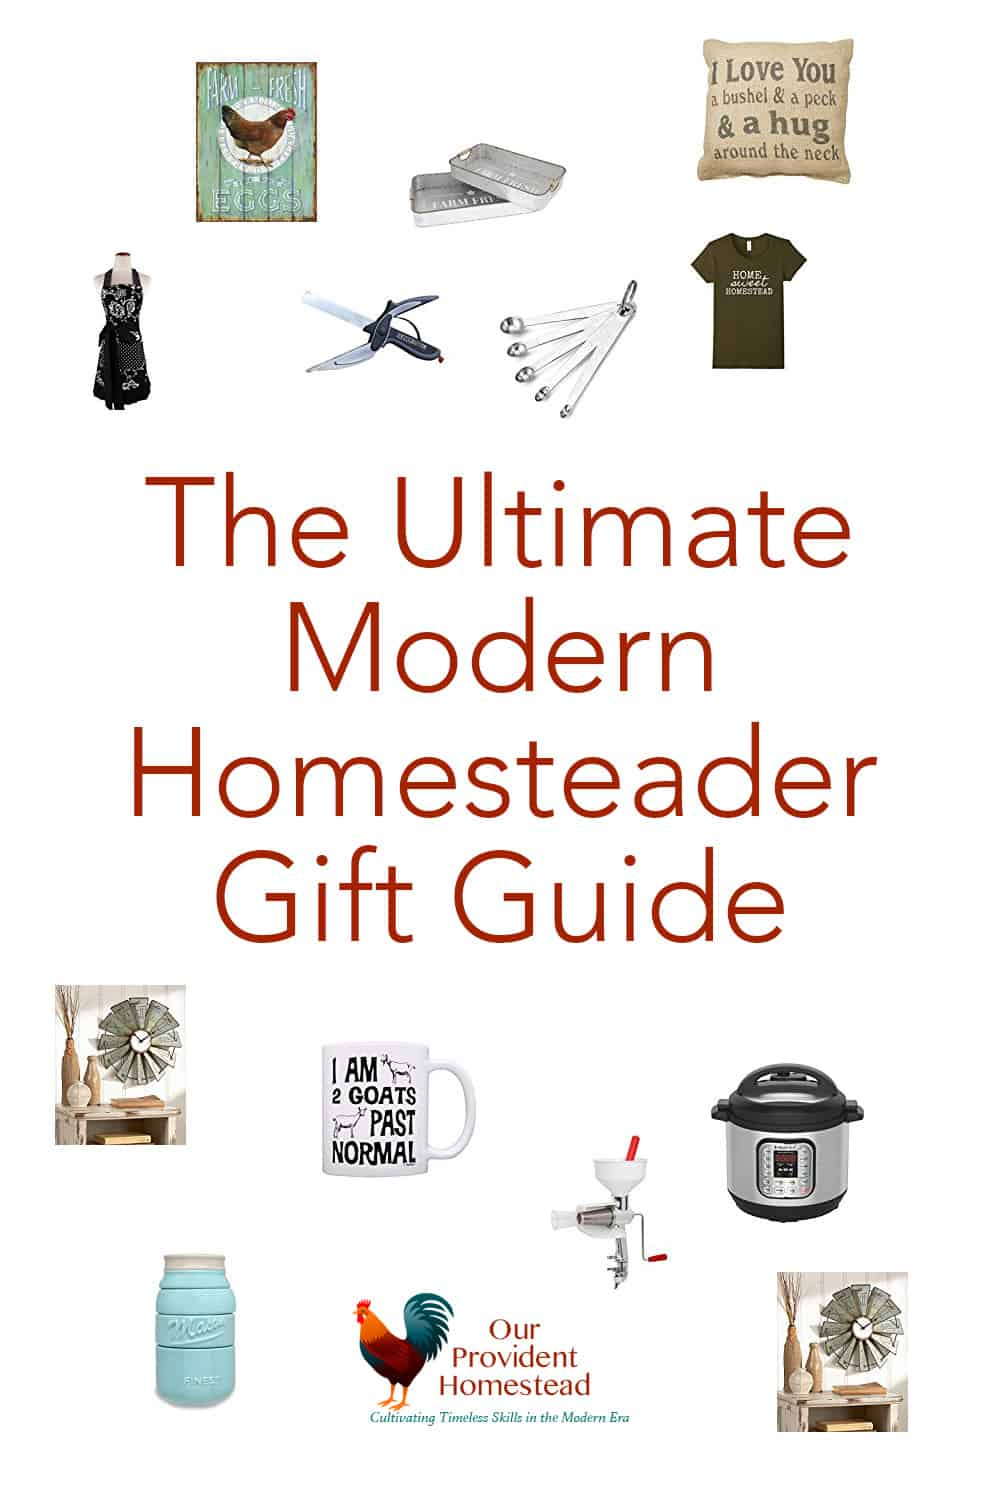 Do you have a homesteader on your gift list this year? Check out this ultimate modern homesteader gift guide and you might find something for you too! #giftguide #Christmas2018 #holidays #Christmas